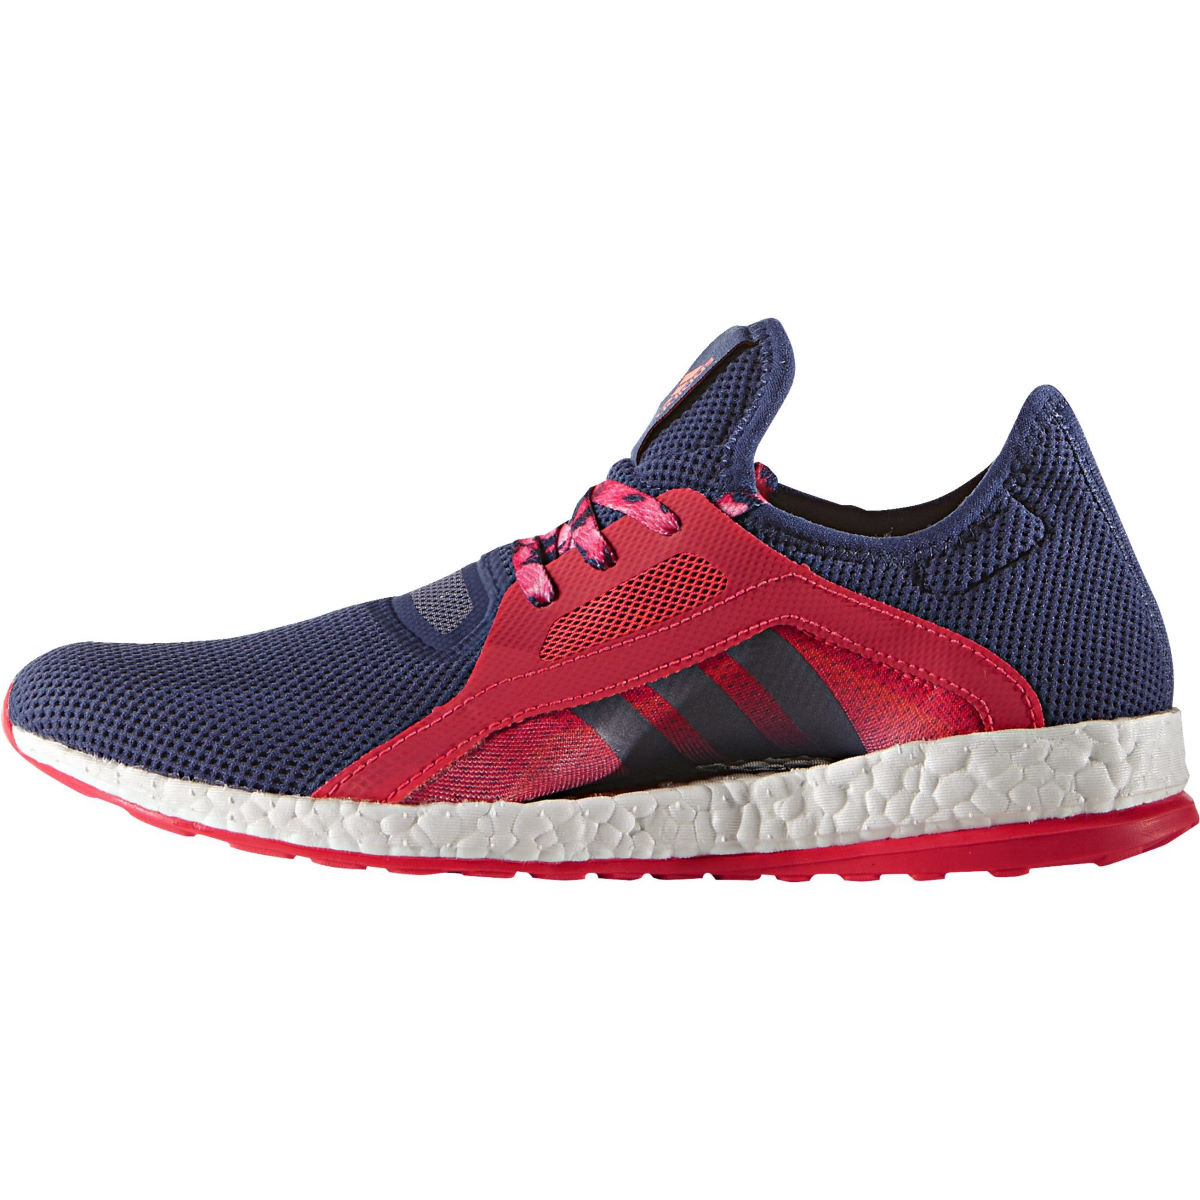 Adidas Women's Pure Boost X Shoes (Purple/Red, SS16)